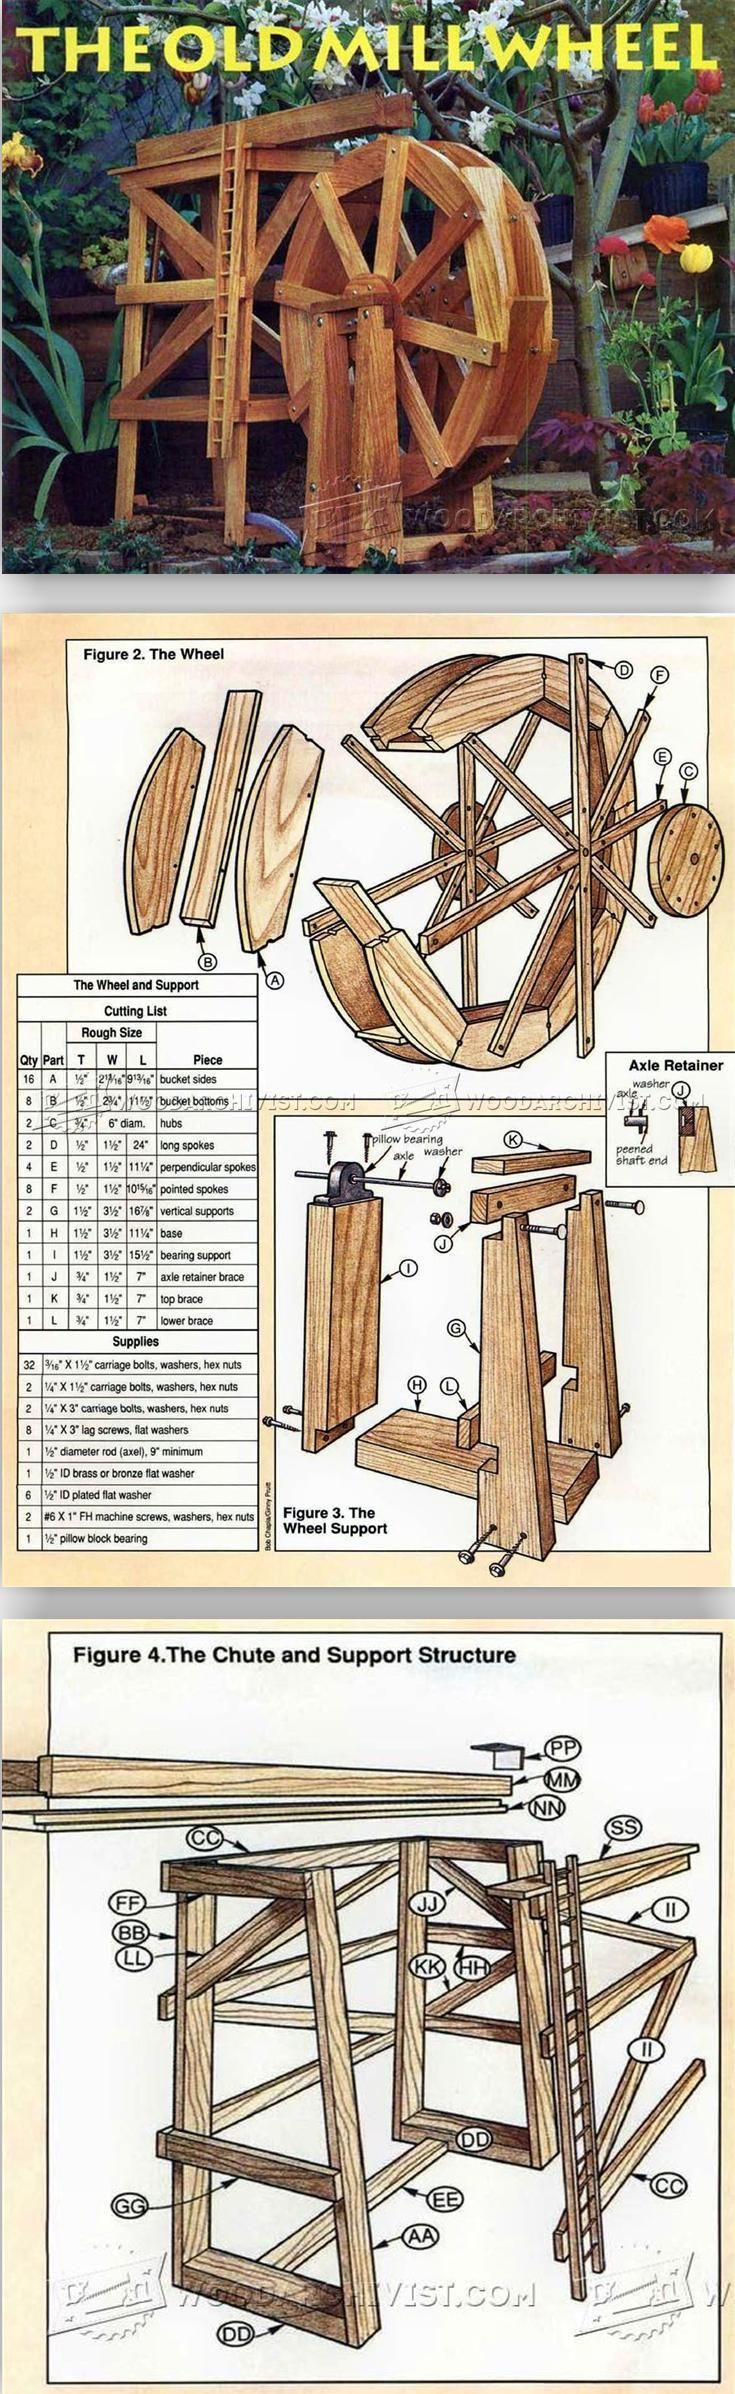 The Old Millwheel - Outdoor Plans and Projects | WoodArchivist.com Woodworking BusinessStart Your Own Woodworking  Business $9500 Per Month Guaranteed! Start A Wood Business How To Successfully Start and Run A Profitable Woodworking Business! Home Woodworking Business Earn $9576 Per Month With An Easy To Start Home Woodworking Business. Woodworking Warning Don't Start a Woodworking Business. Until You've Seen This...